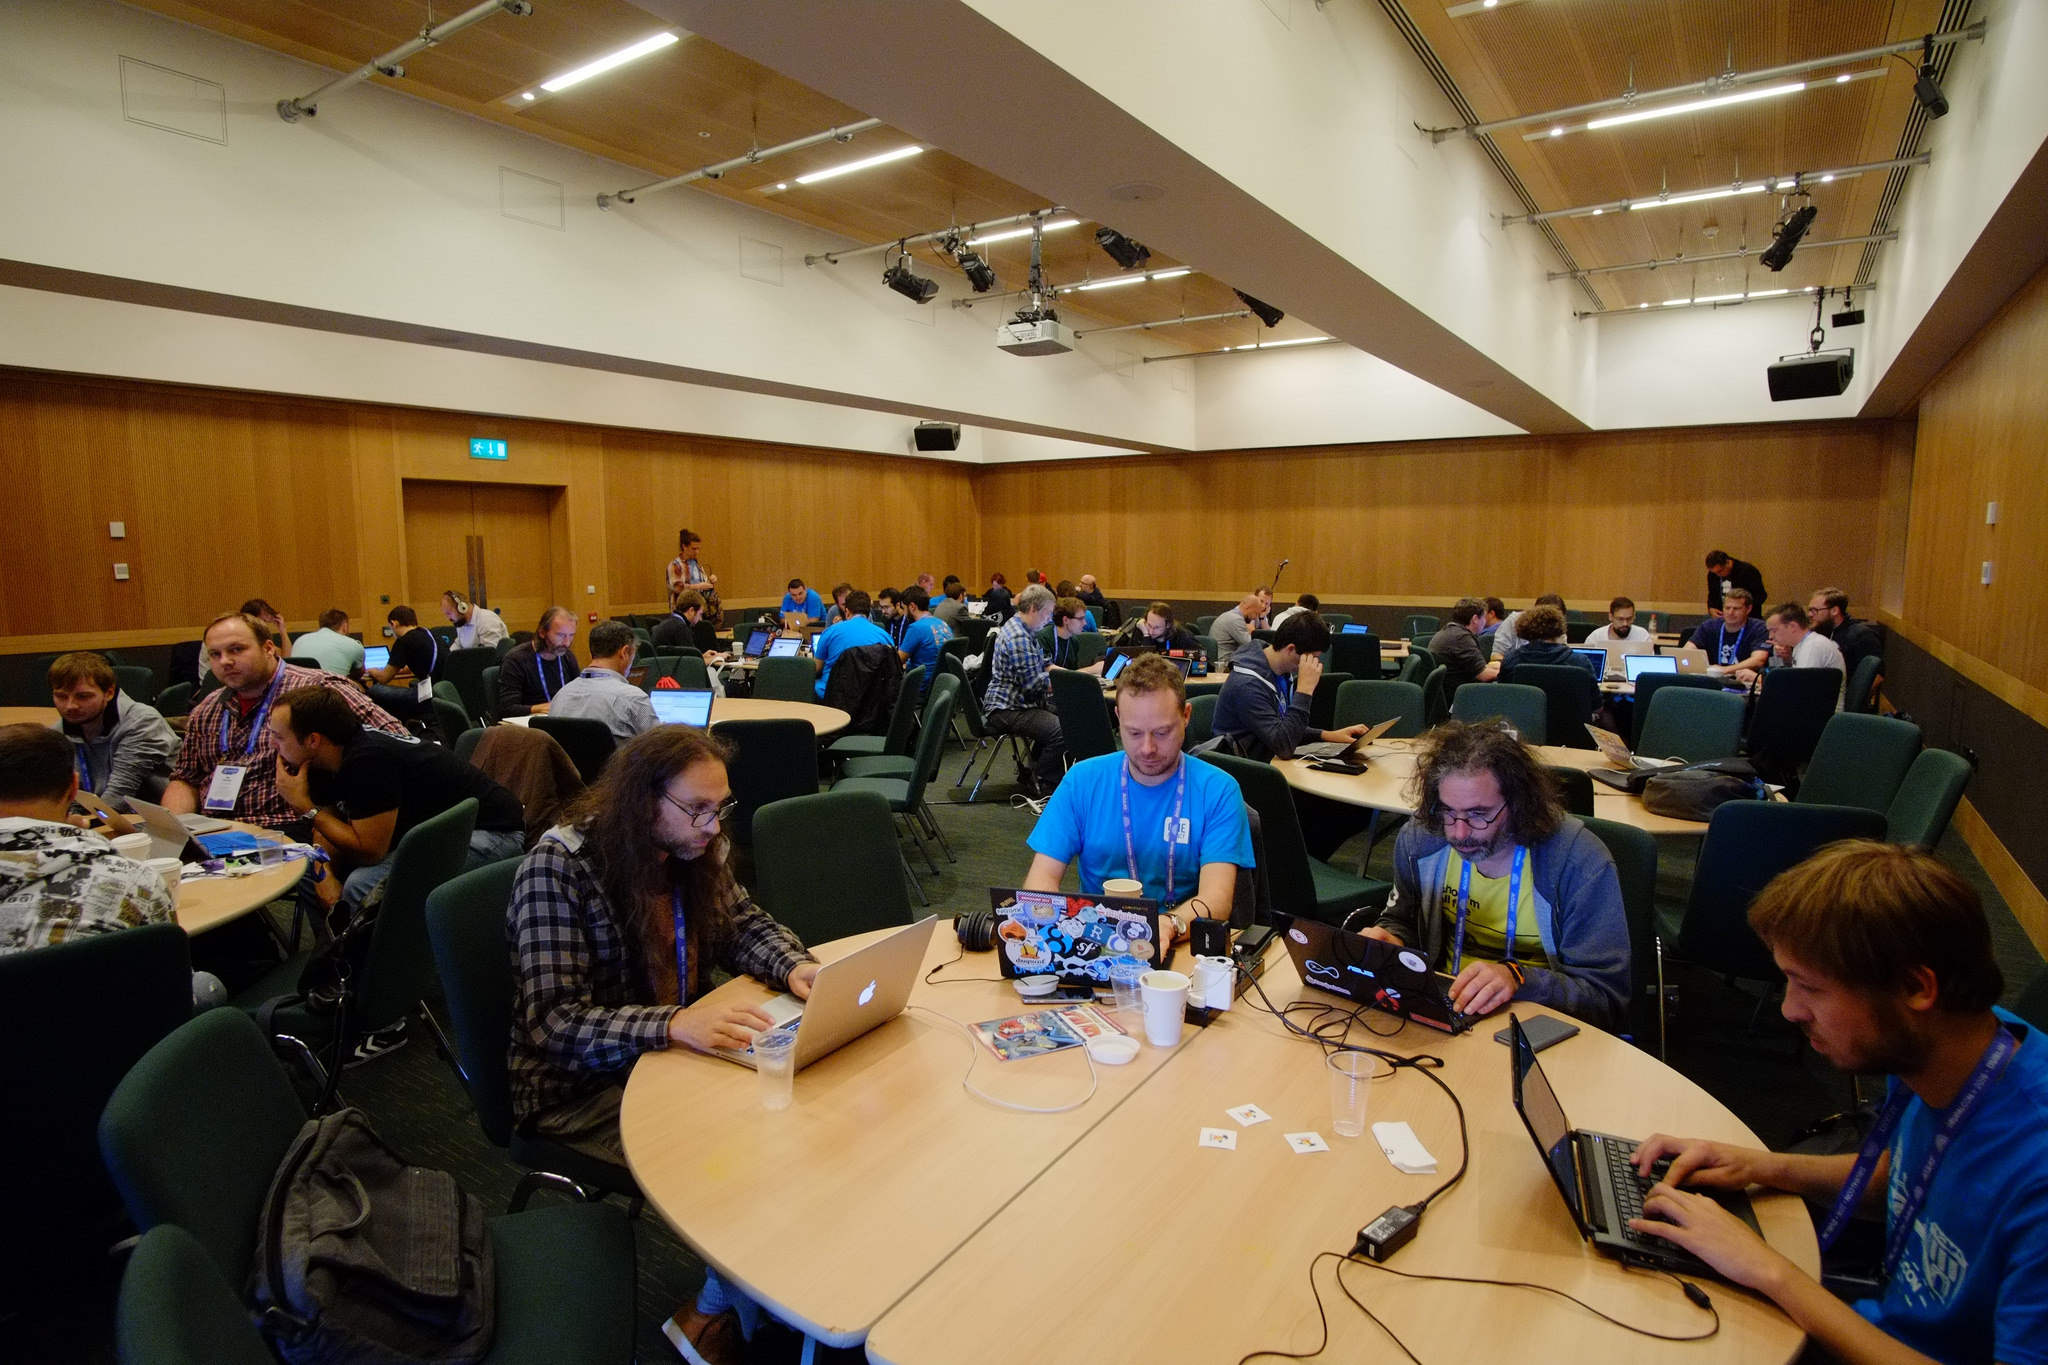 Sprinting with the Drupal community.